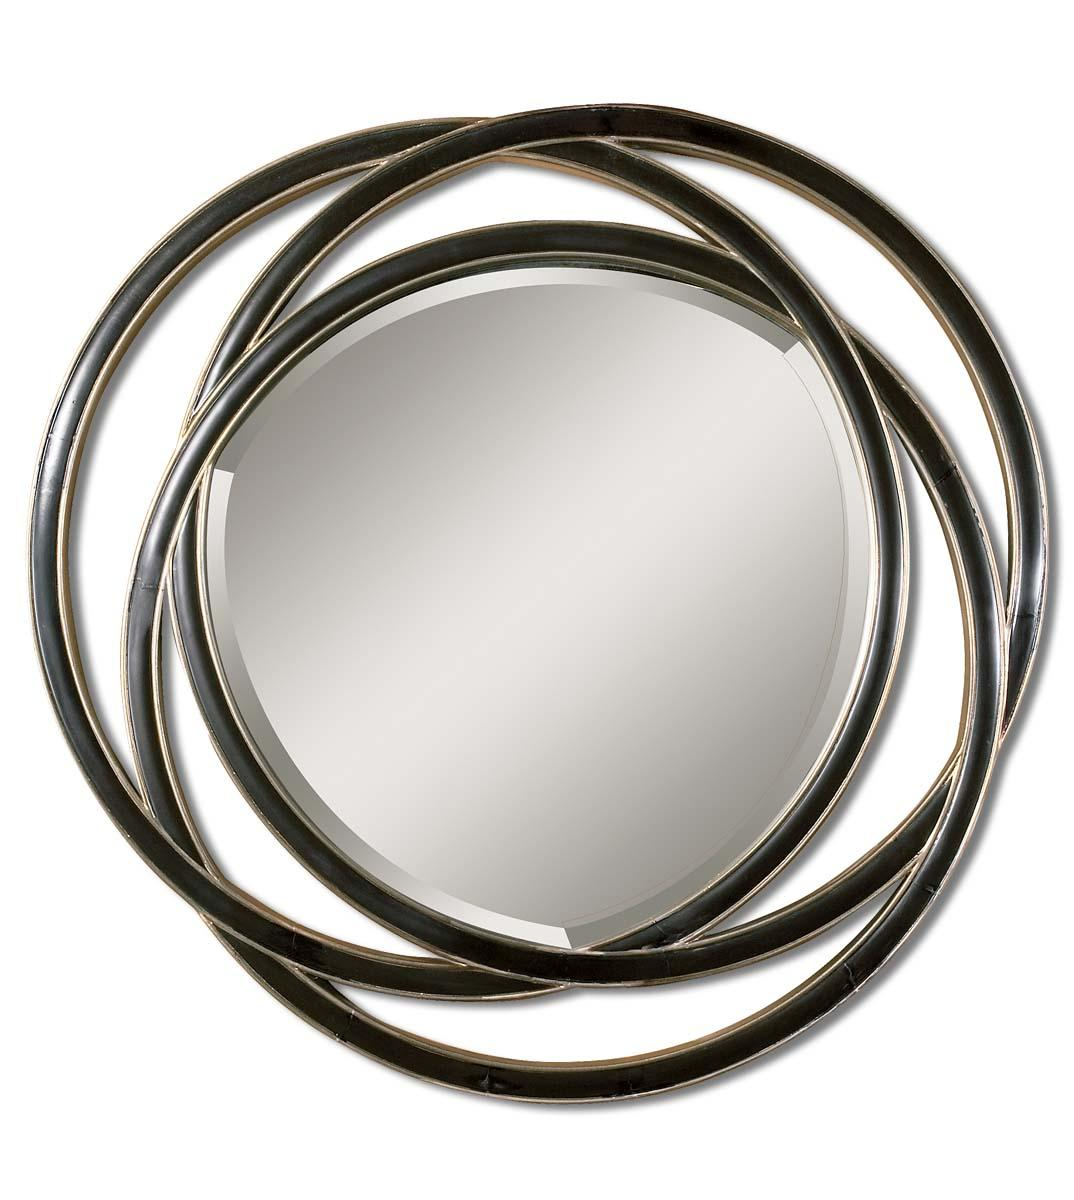 Uttermost Mirrors Odalis - Item Number: 14522 B